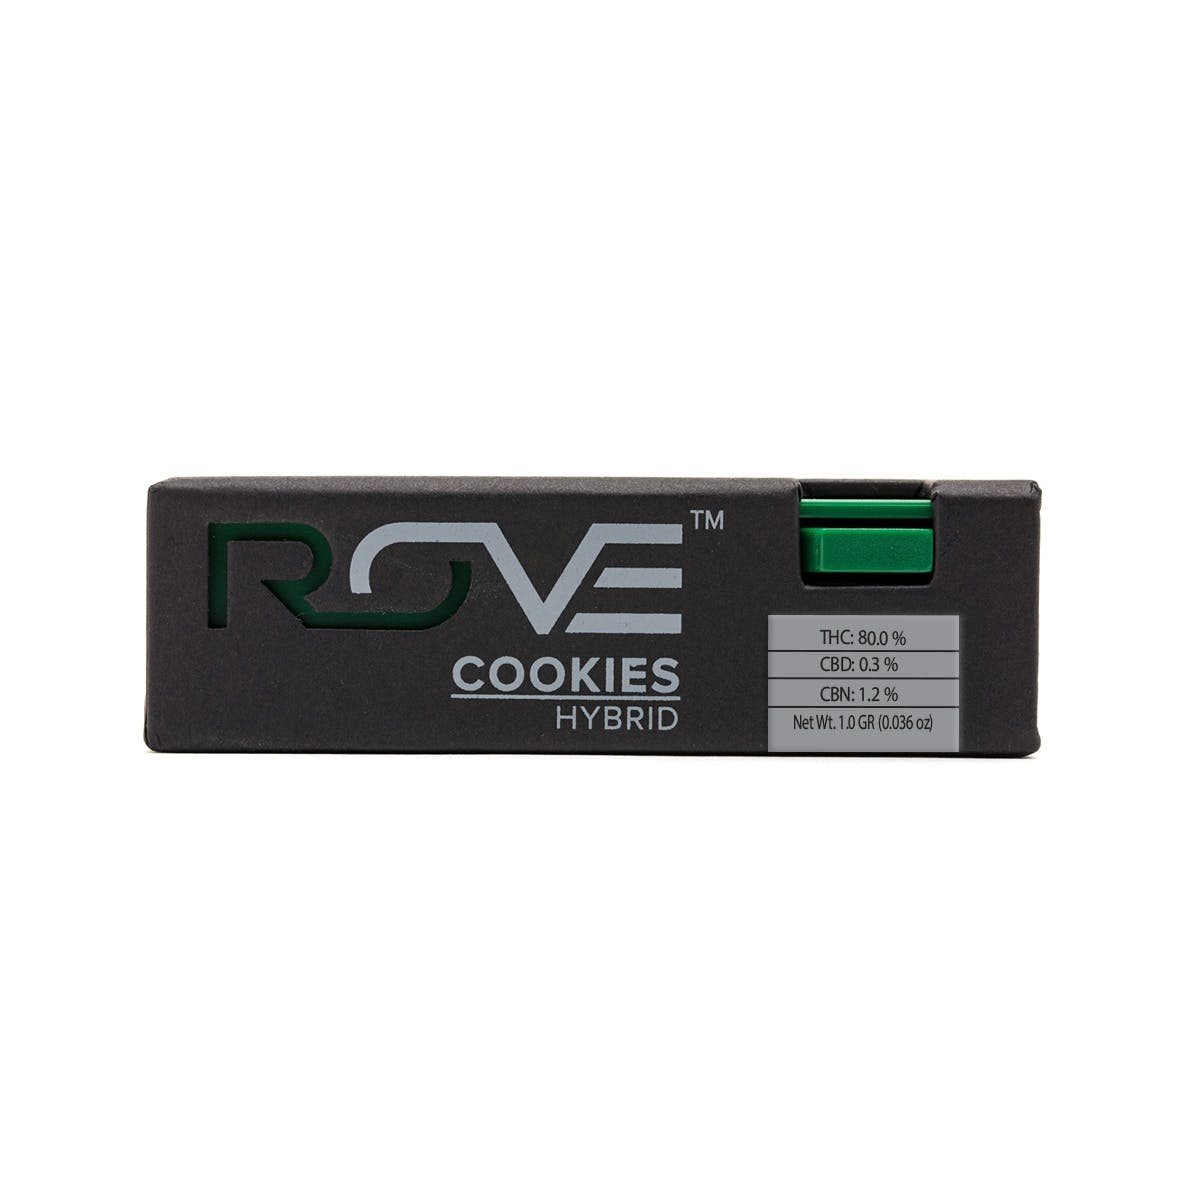 marijuana-dispensaries-true-central-20-cap-collective-in-los-angeles-cookies-cartridge-nv